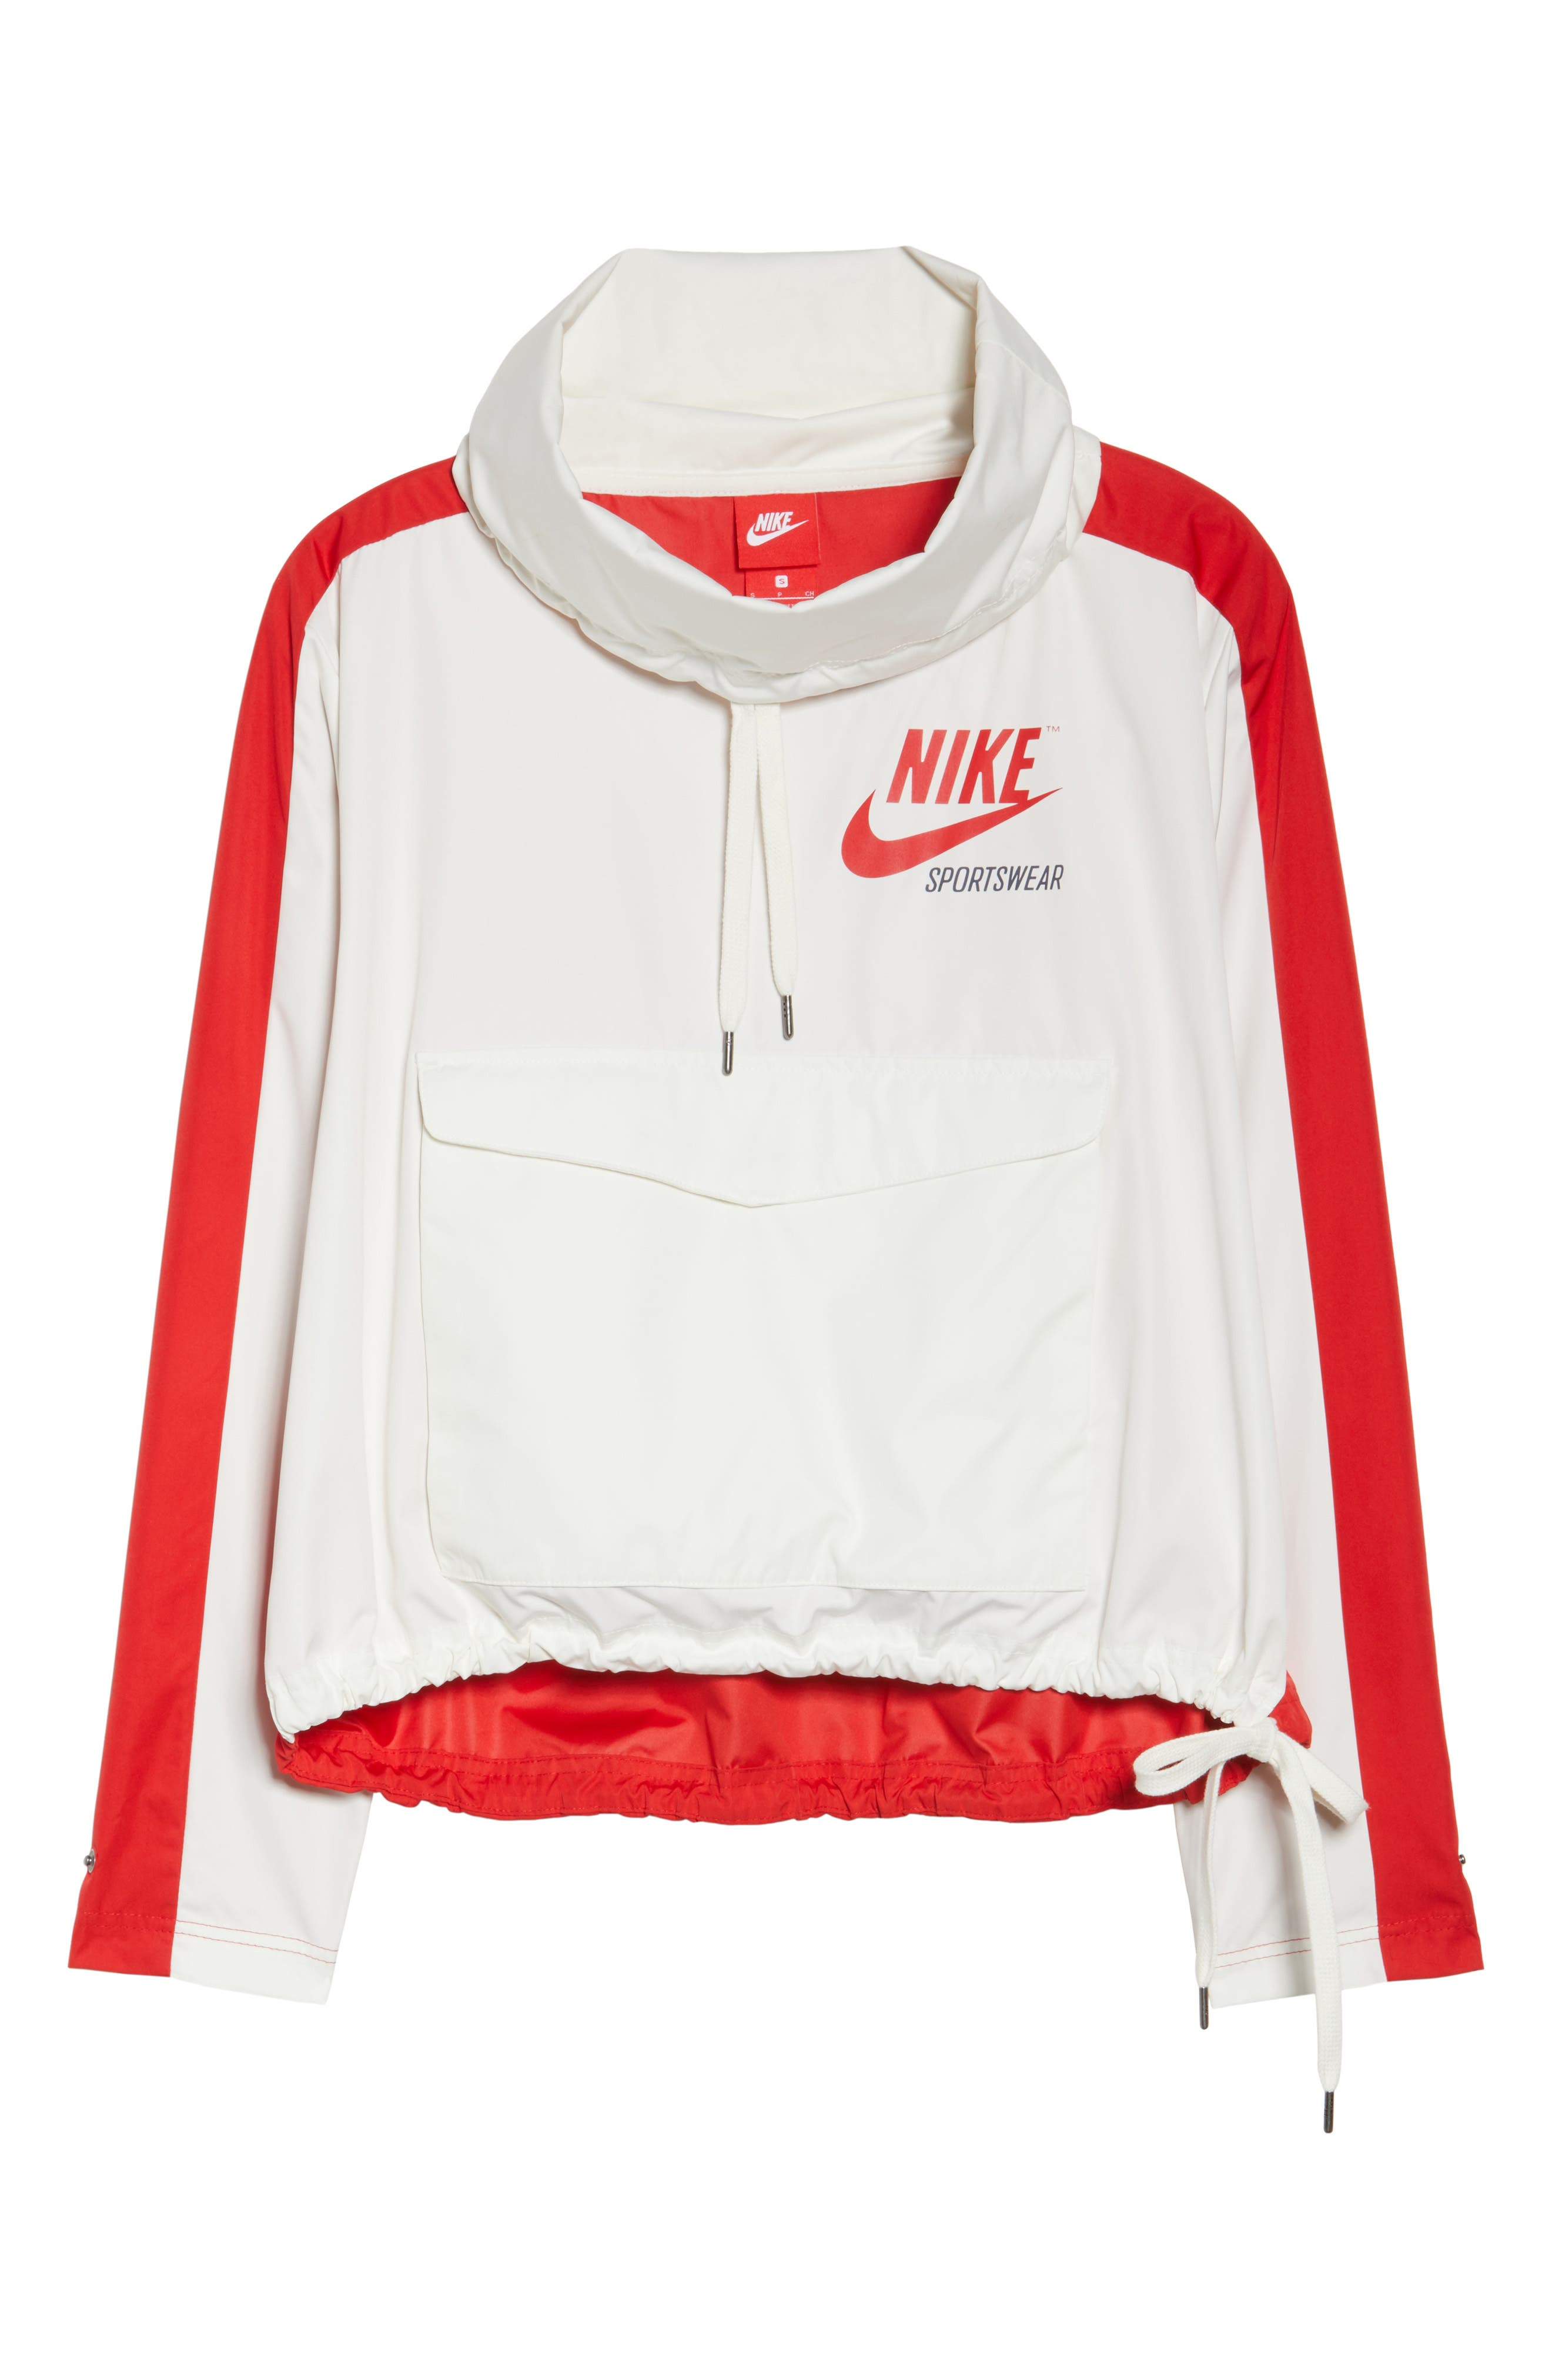 Sportswear Archive Jacket,                             Alternate thumbnail 13, color,